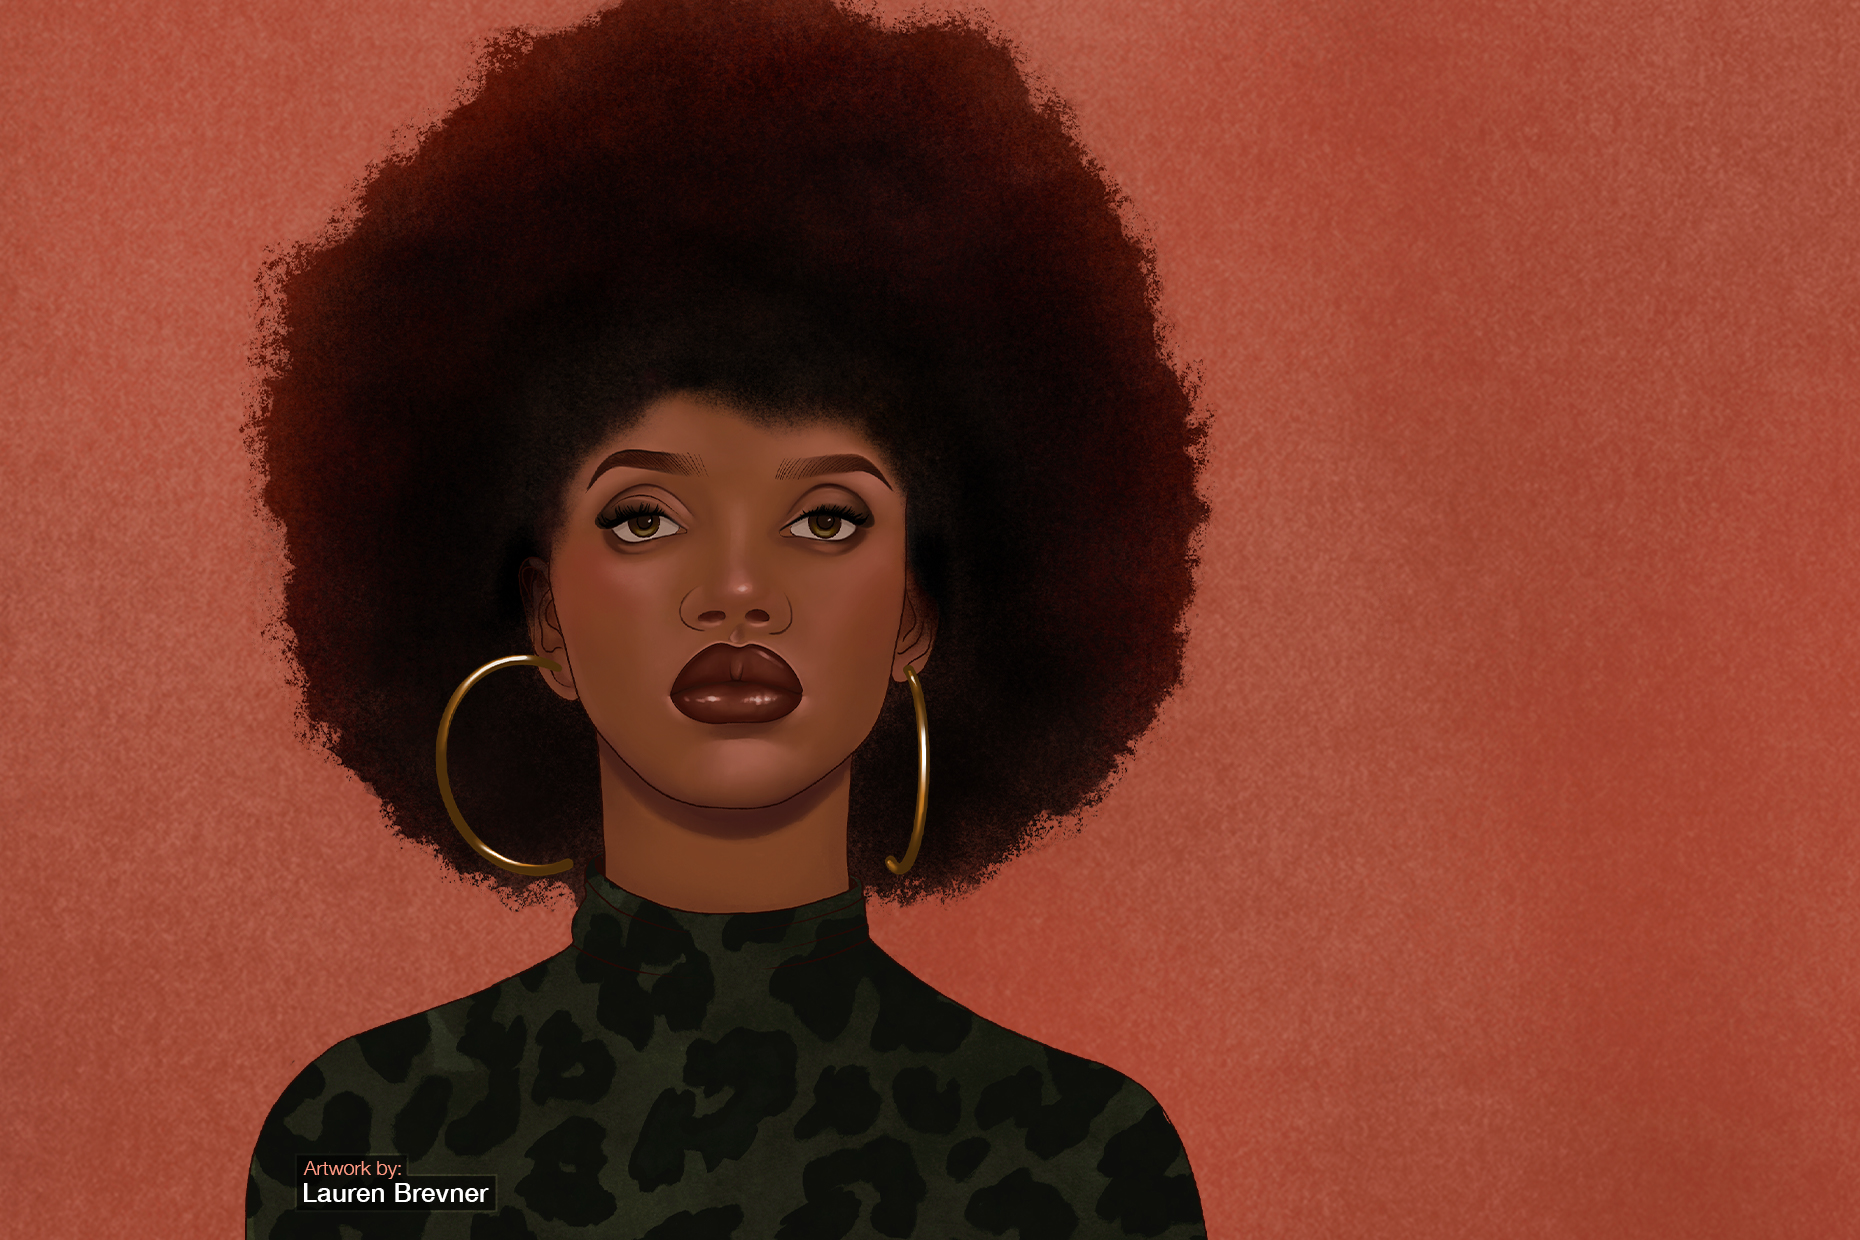 The image shows a digital illustration of a Black woman facing front with an Afro hairstyle.